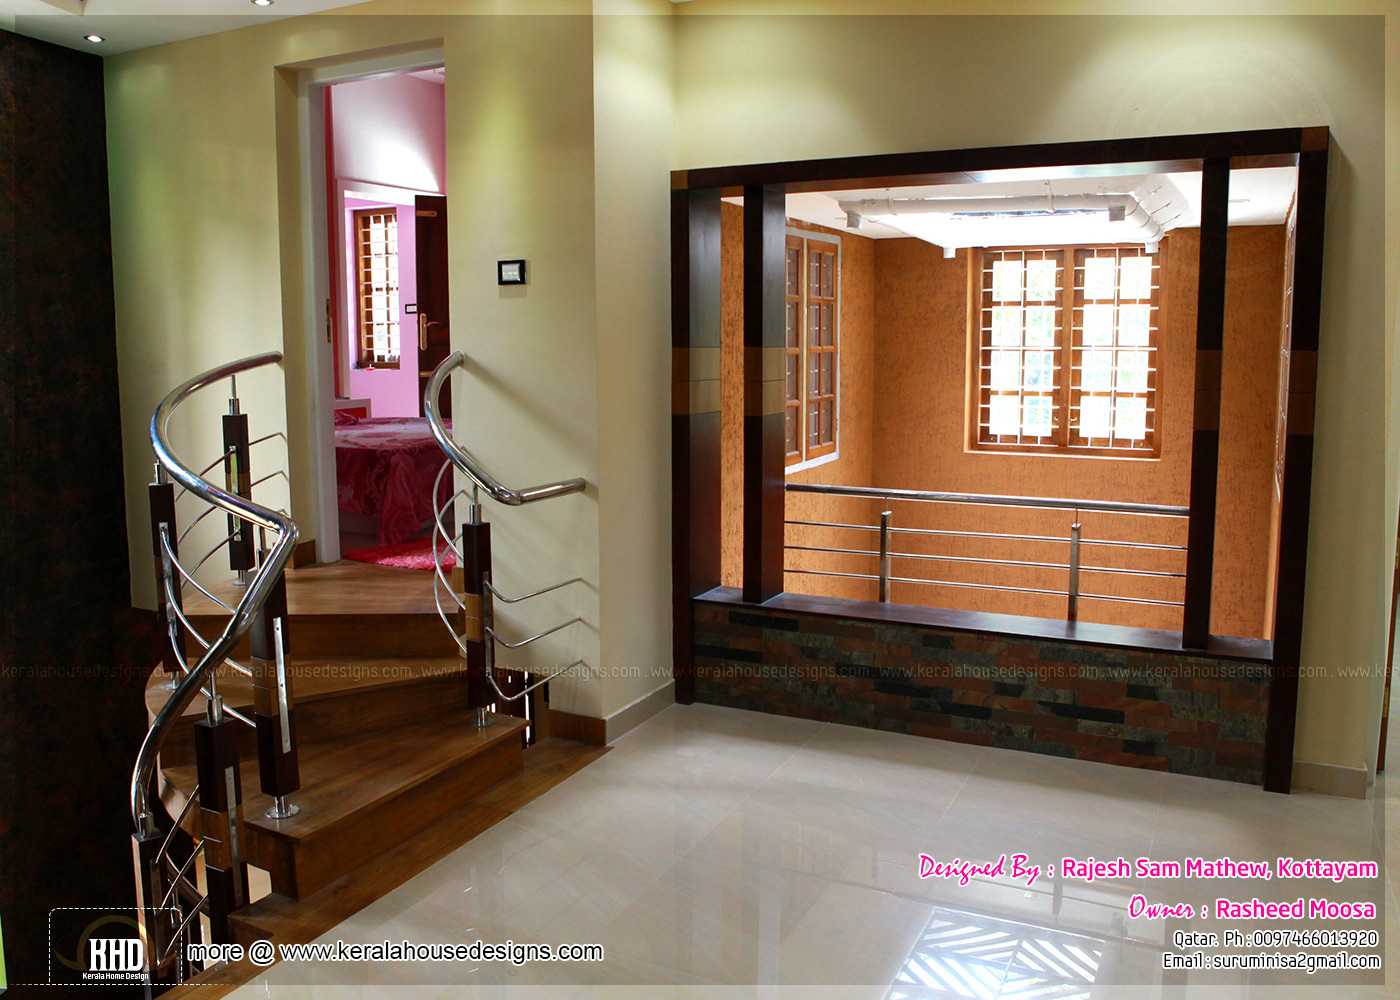 Kerala interior design with photos kerala home design and floor plans Interior design ideas for kerala houses